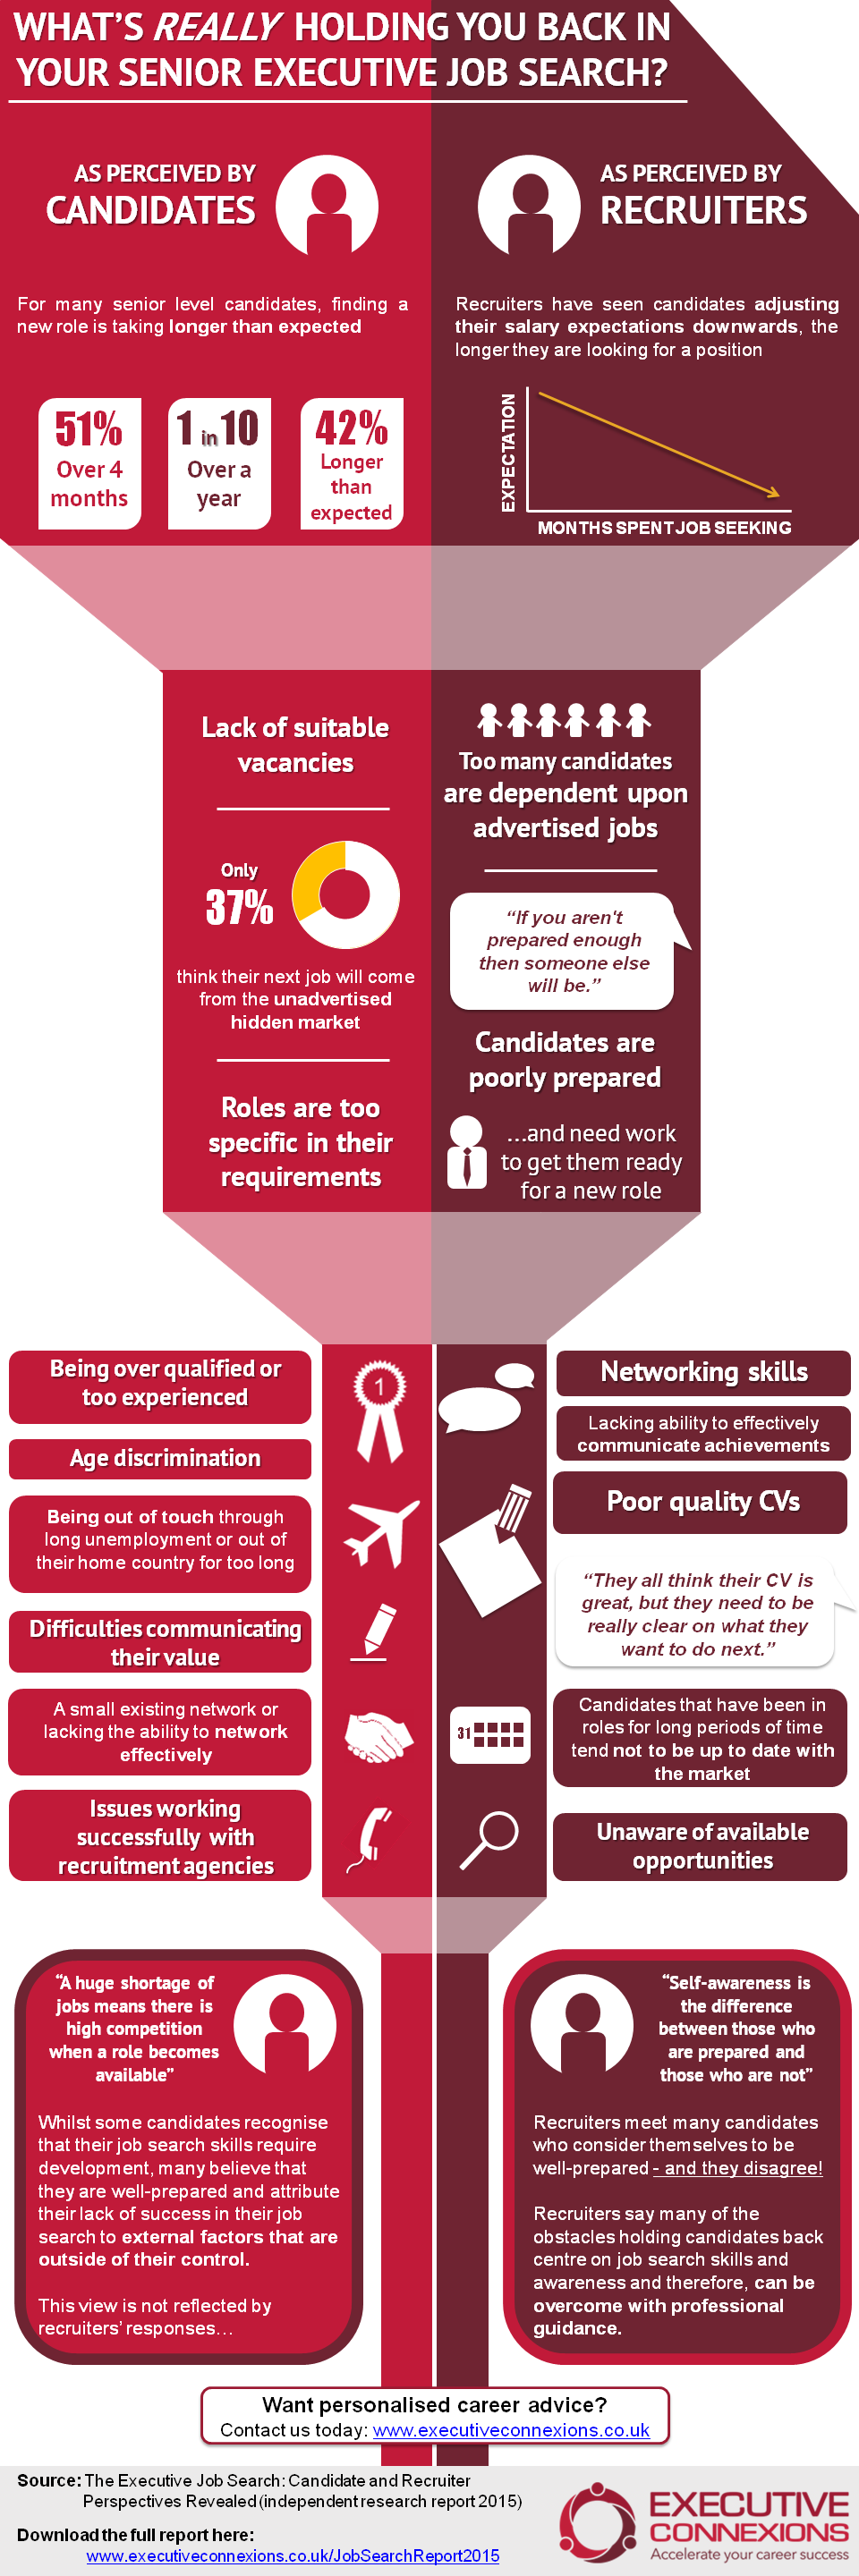 What's really holding you back in your senior executive job search? [Infographic]